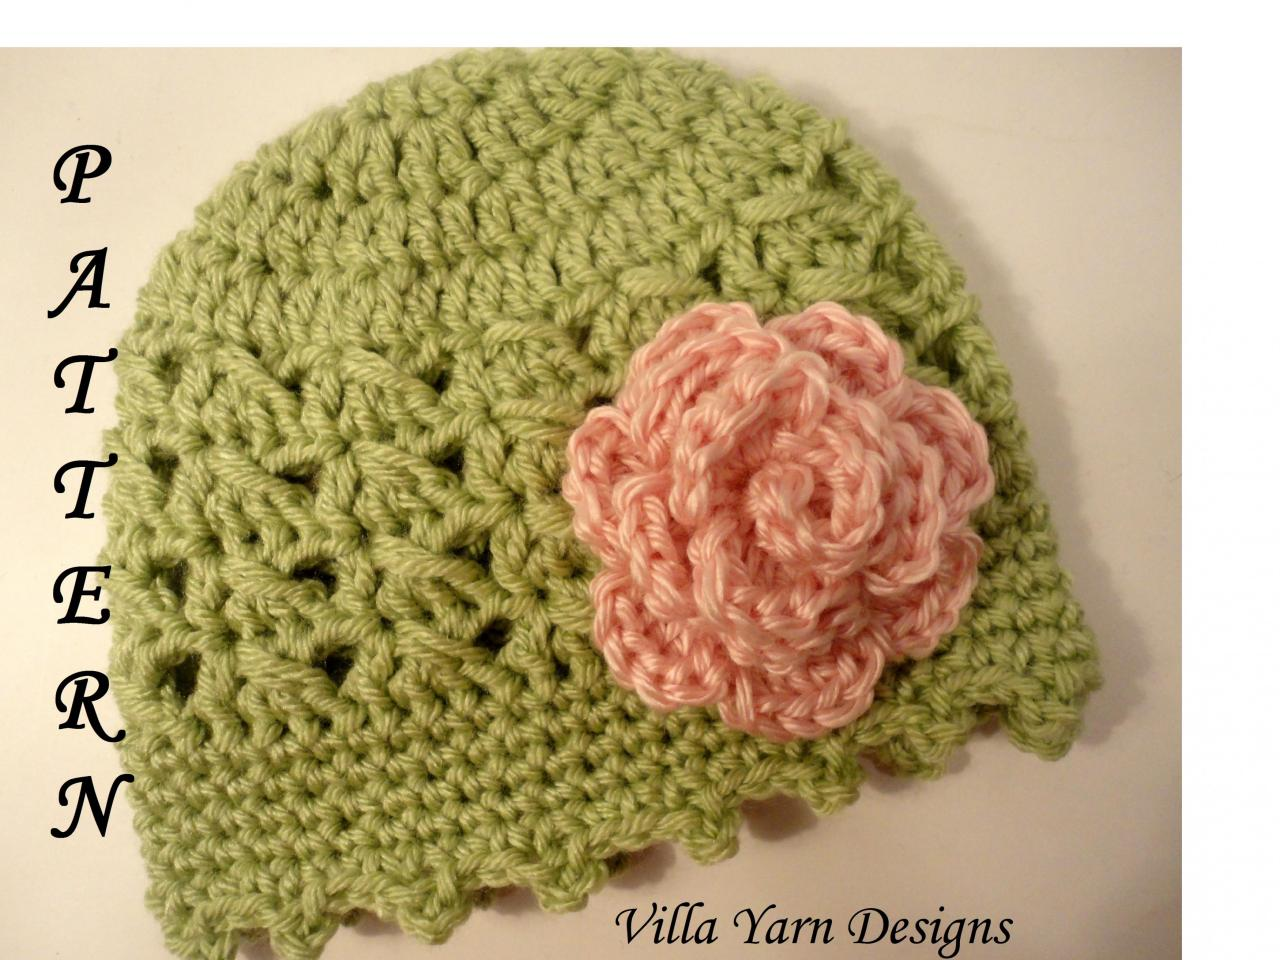 Crochet Baby Hat Pattern With Flower, Baby Girl, Newborn ...